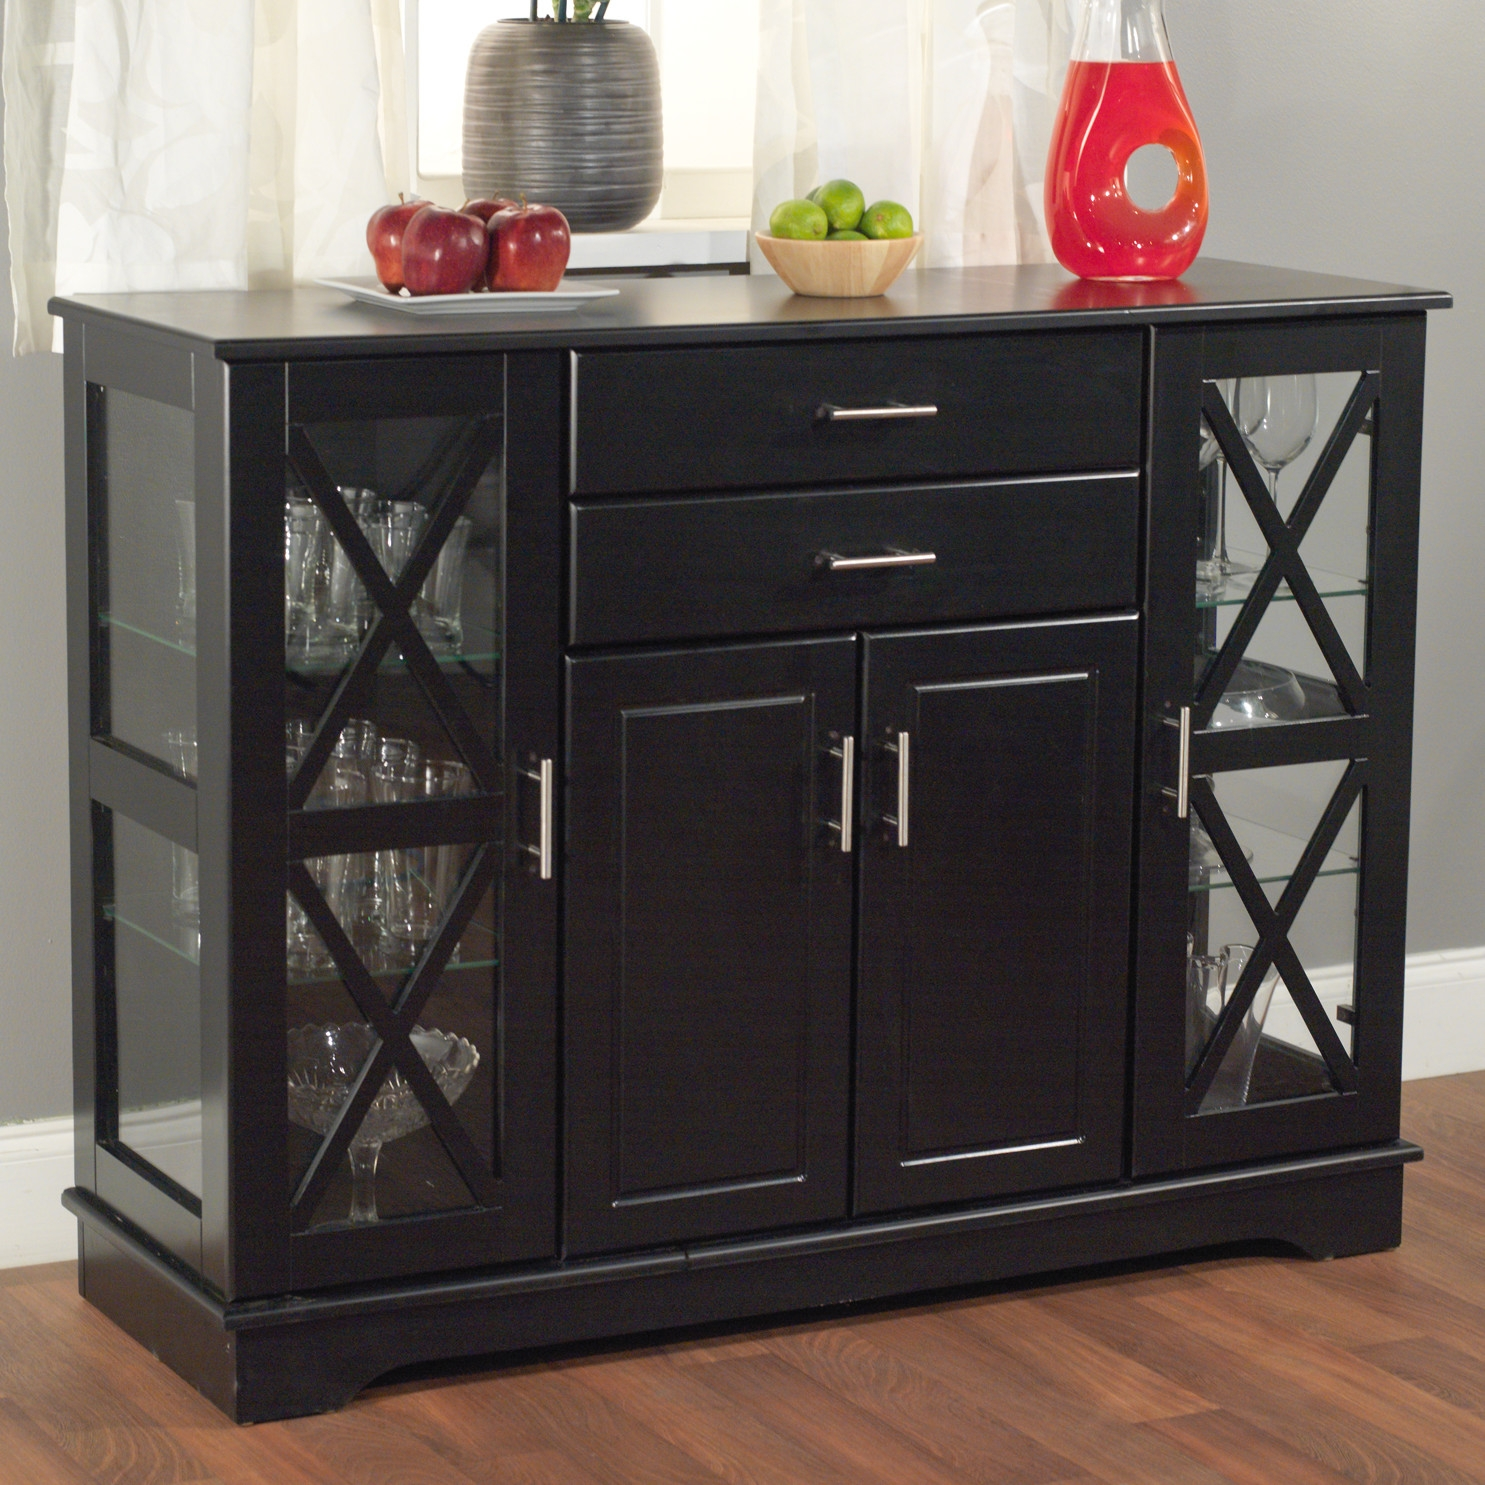 Black Wood Buffets ~ Black wood buffet dining room sideboard with glass doors